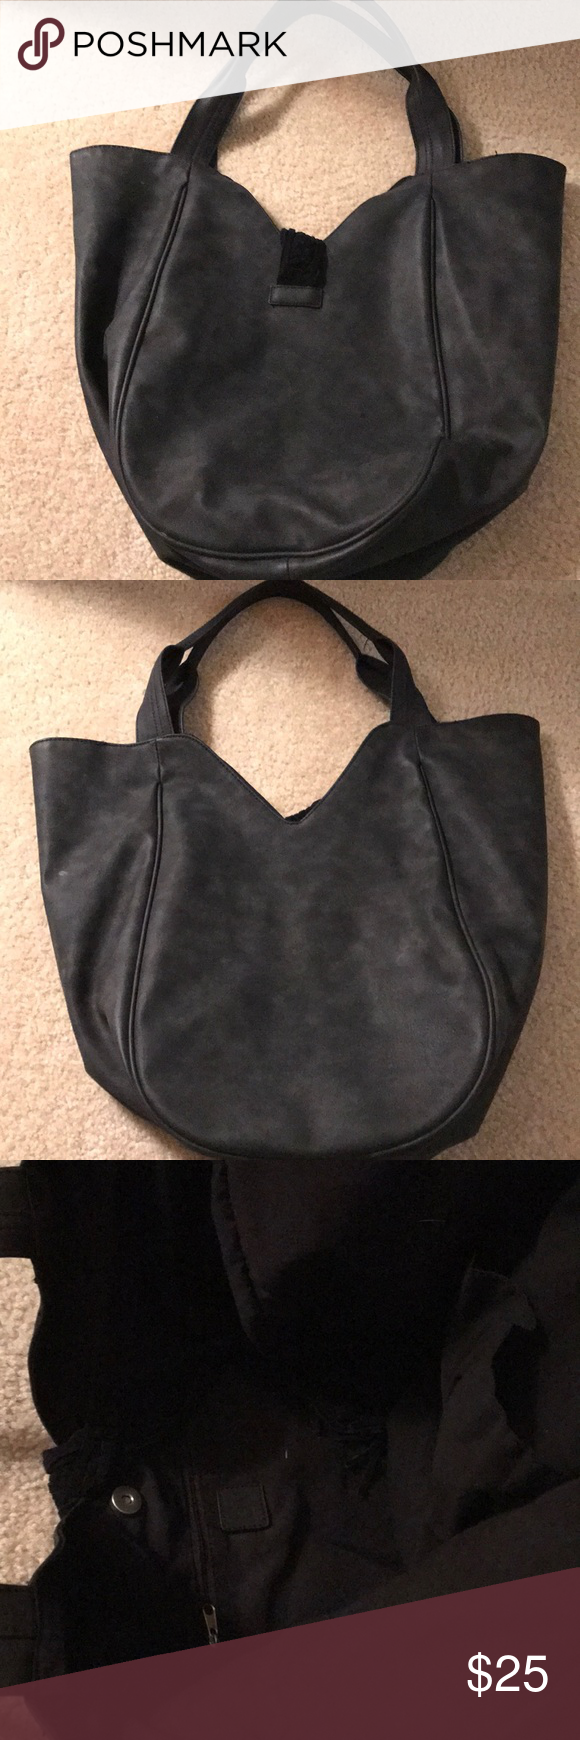 425c2f58bced9b Dolce Vita DV tote bag Target in black Large DV tote bag New and never used  in black! I bought the wrong color! One zippered pocket on inside and 2  pockets ...